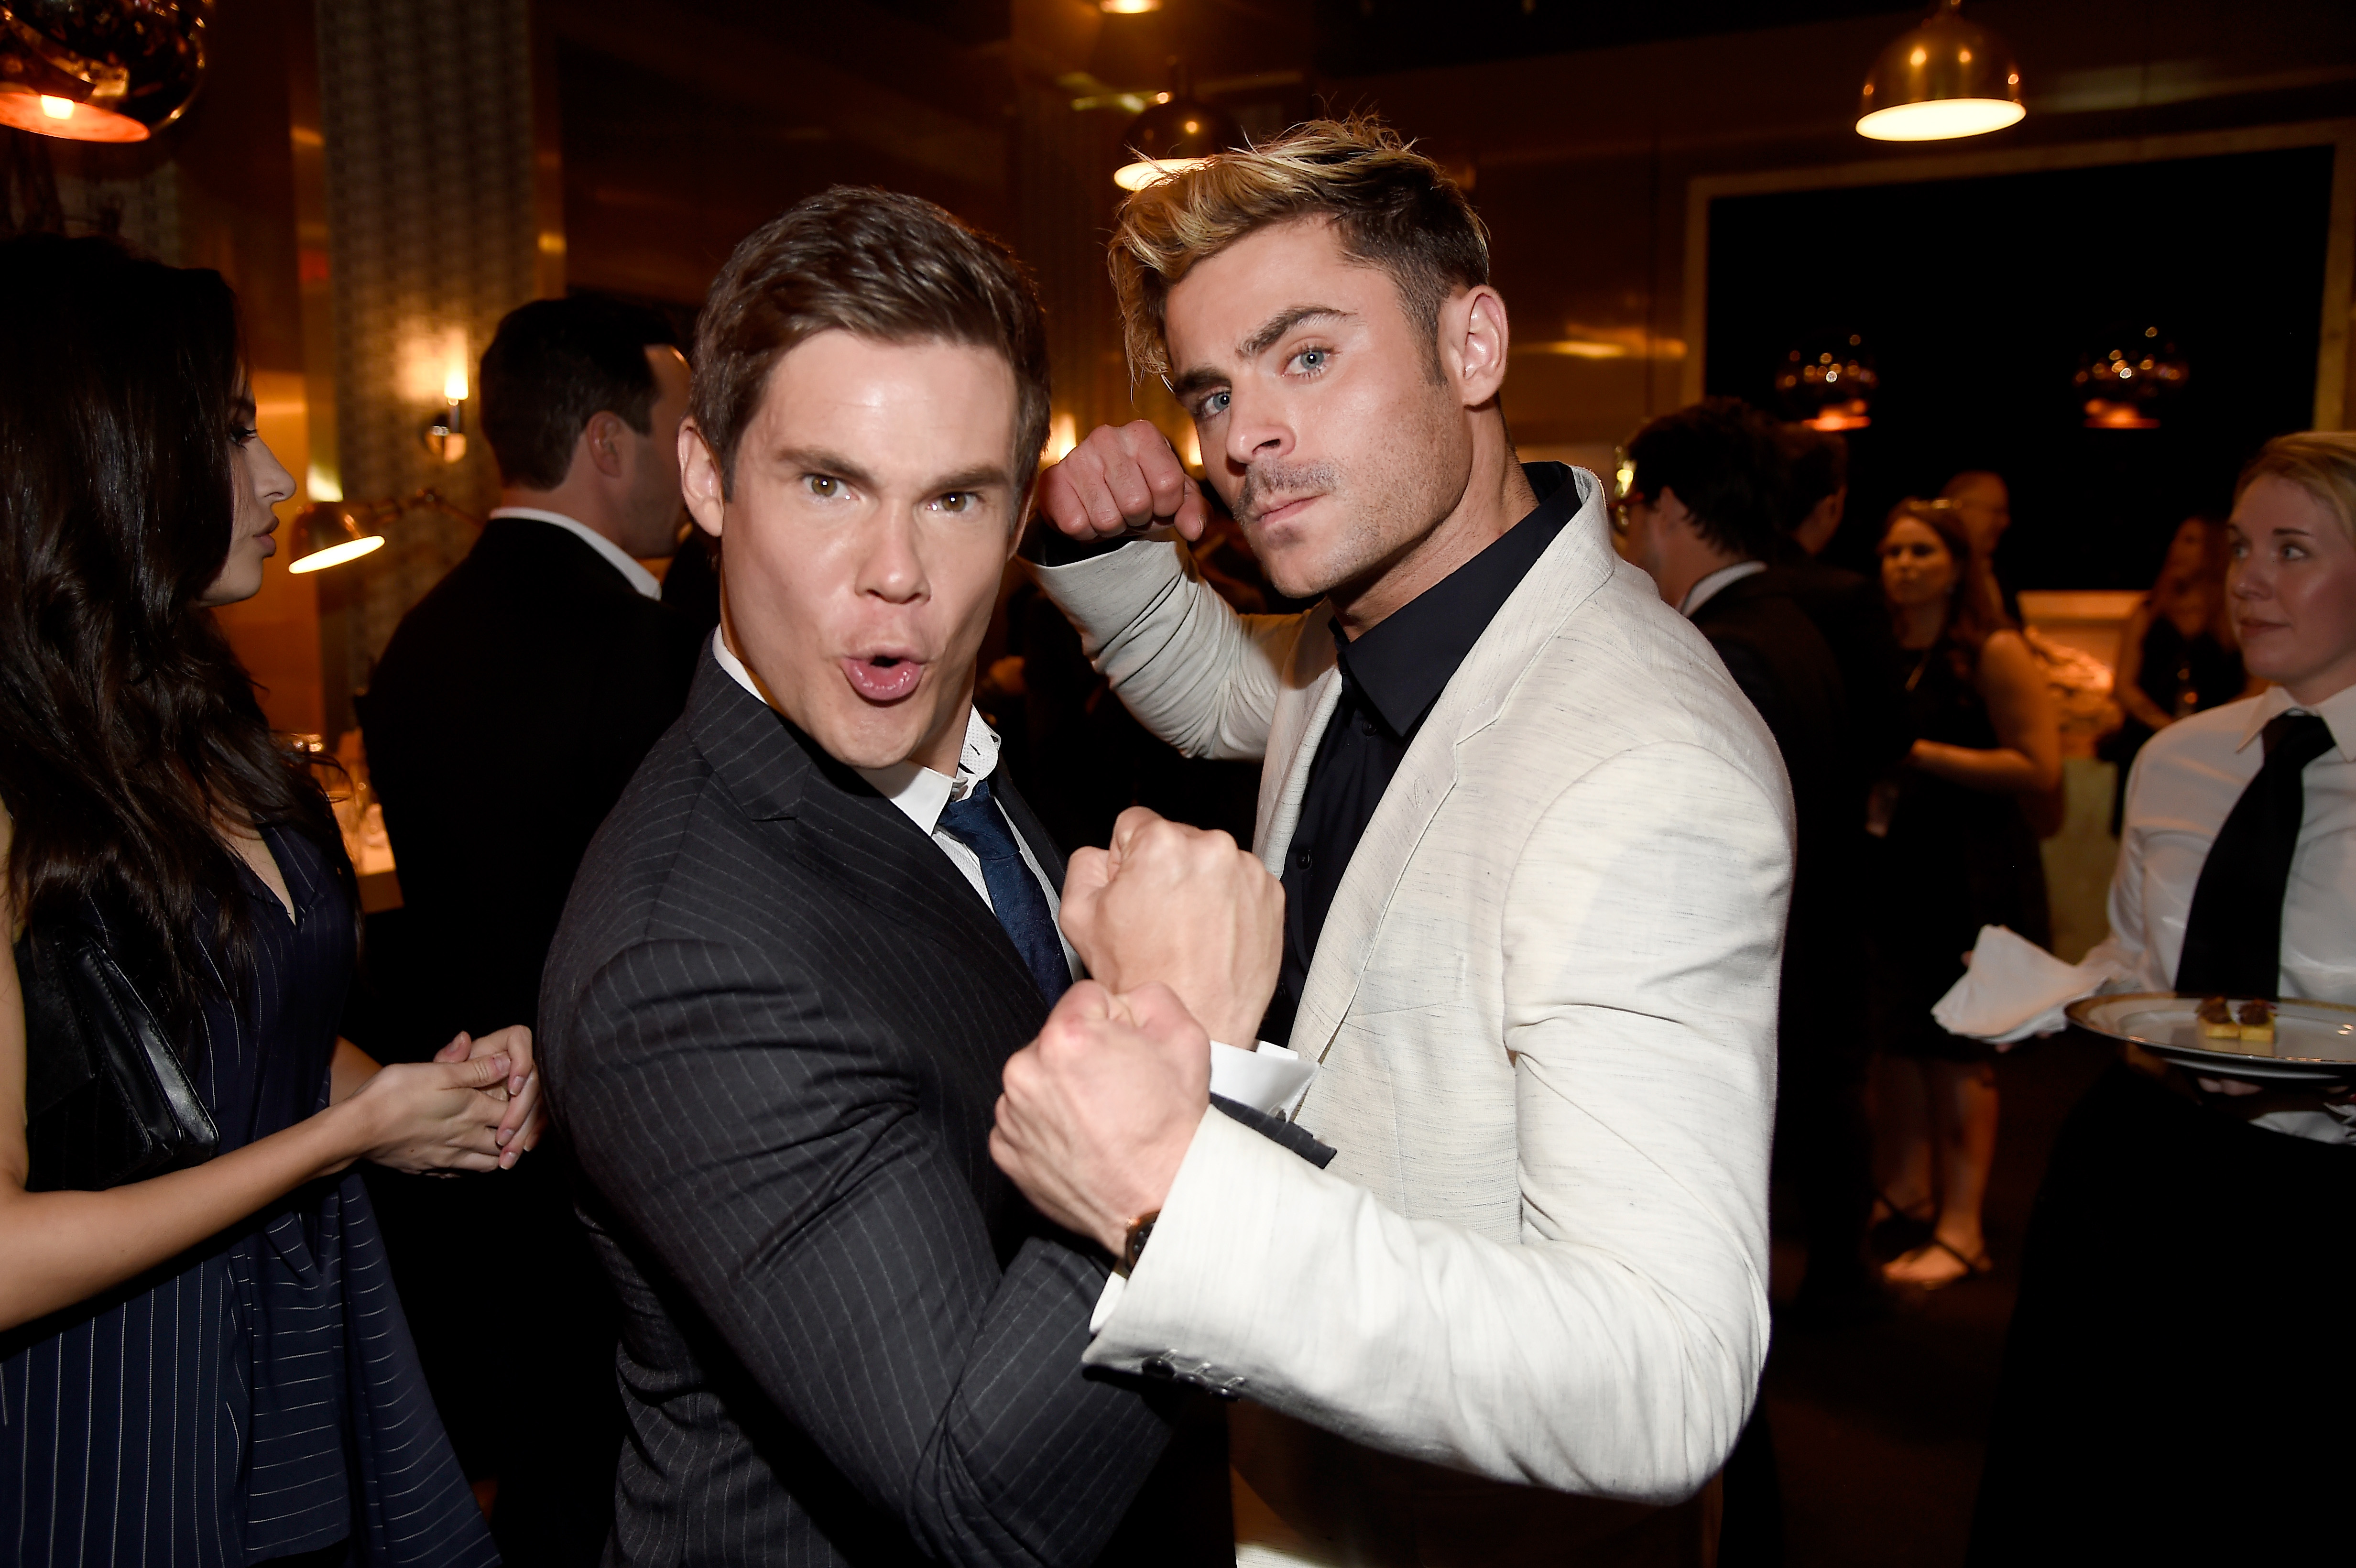 How come we never noticed that Zac Efron and Adam DeVine always take the most bonkers photos?